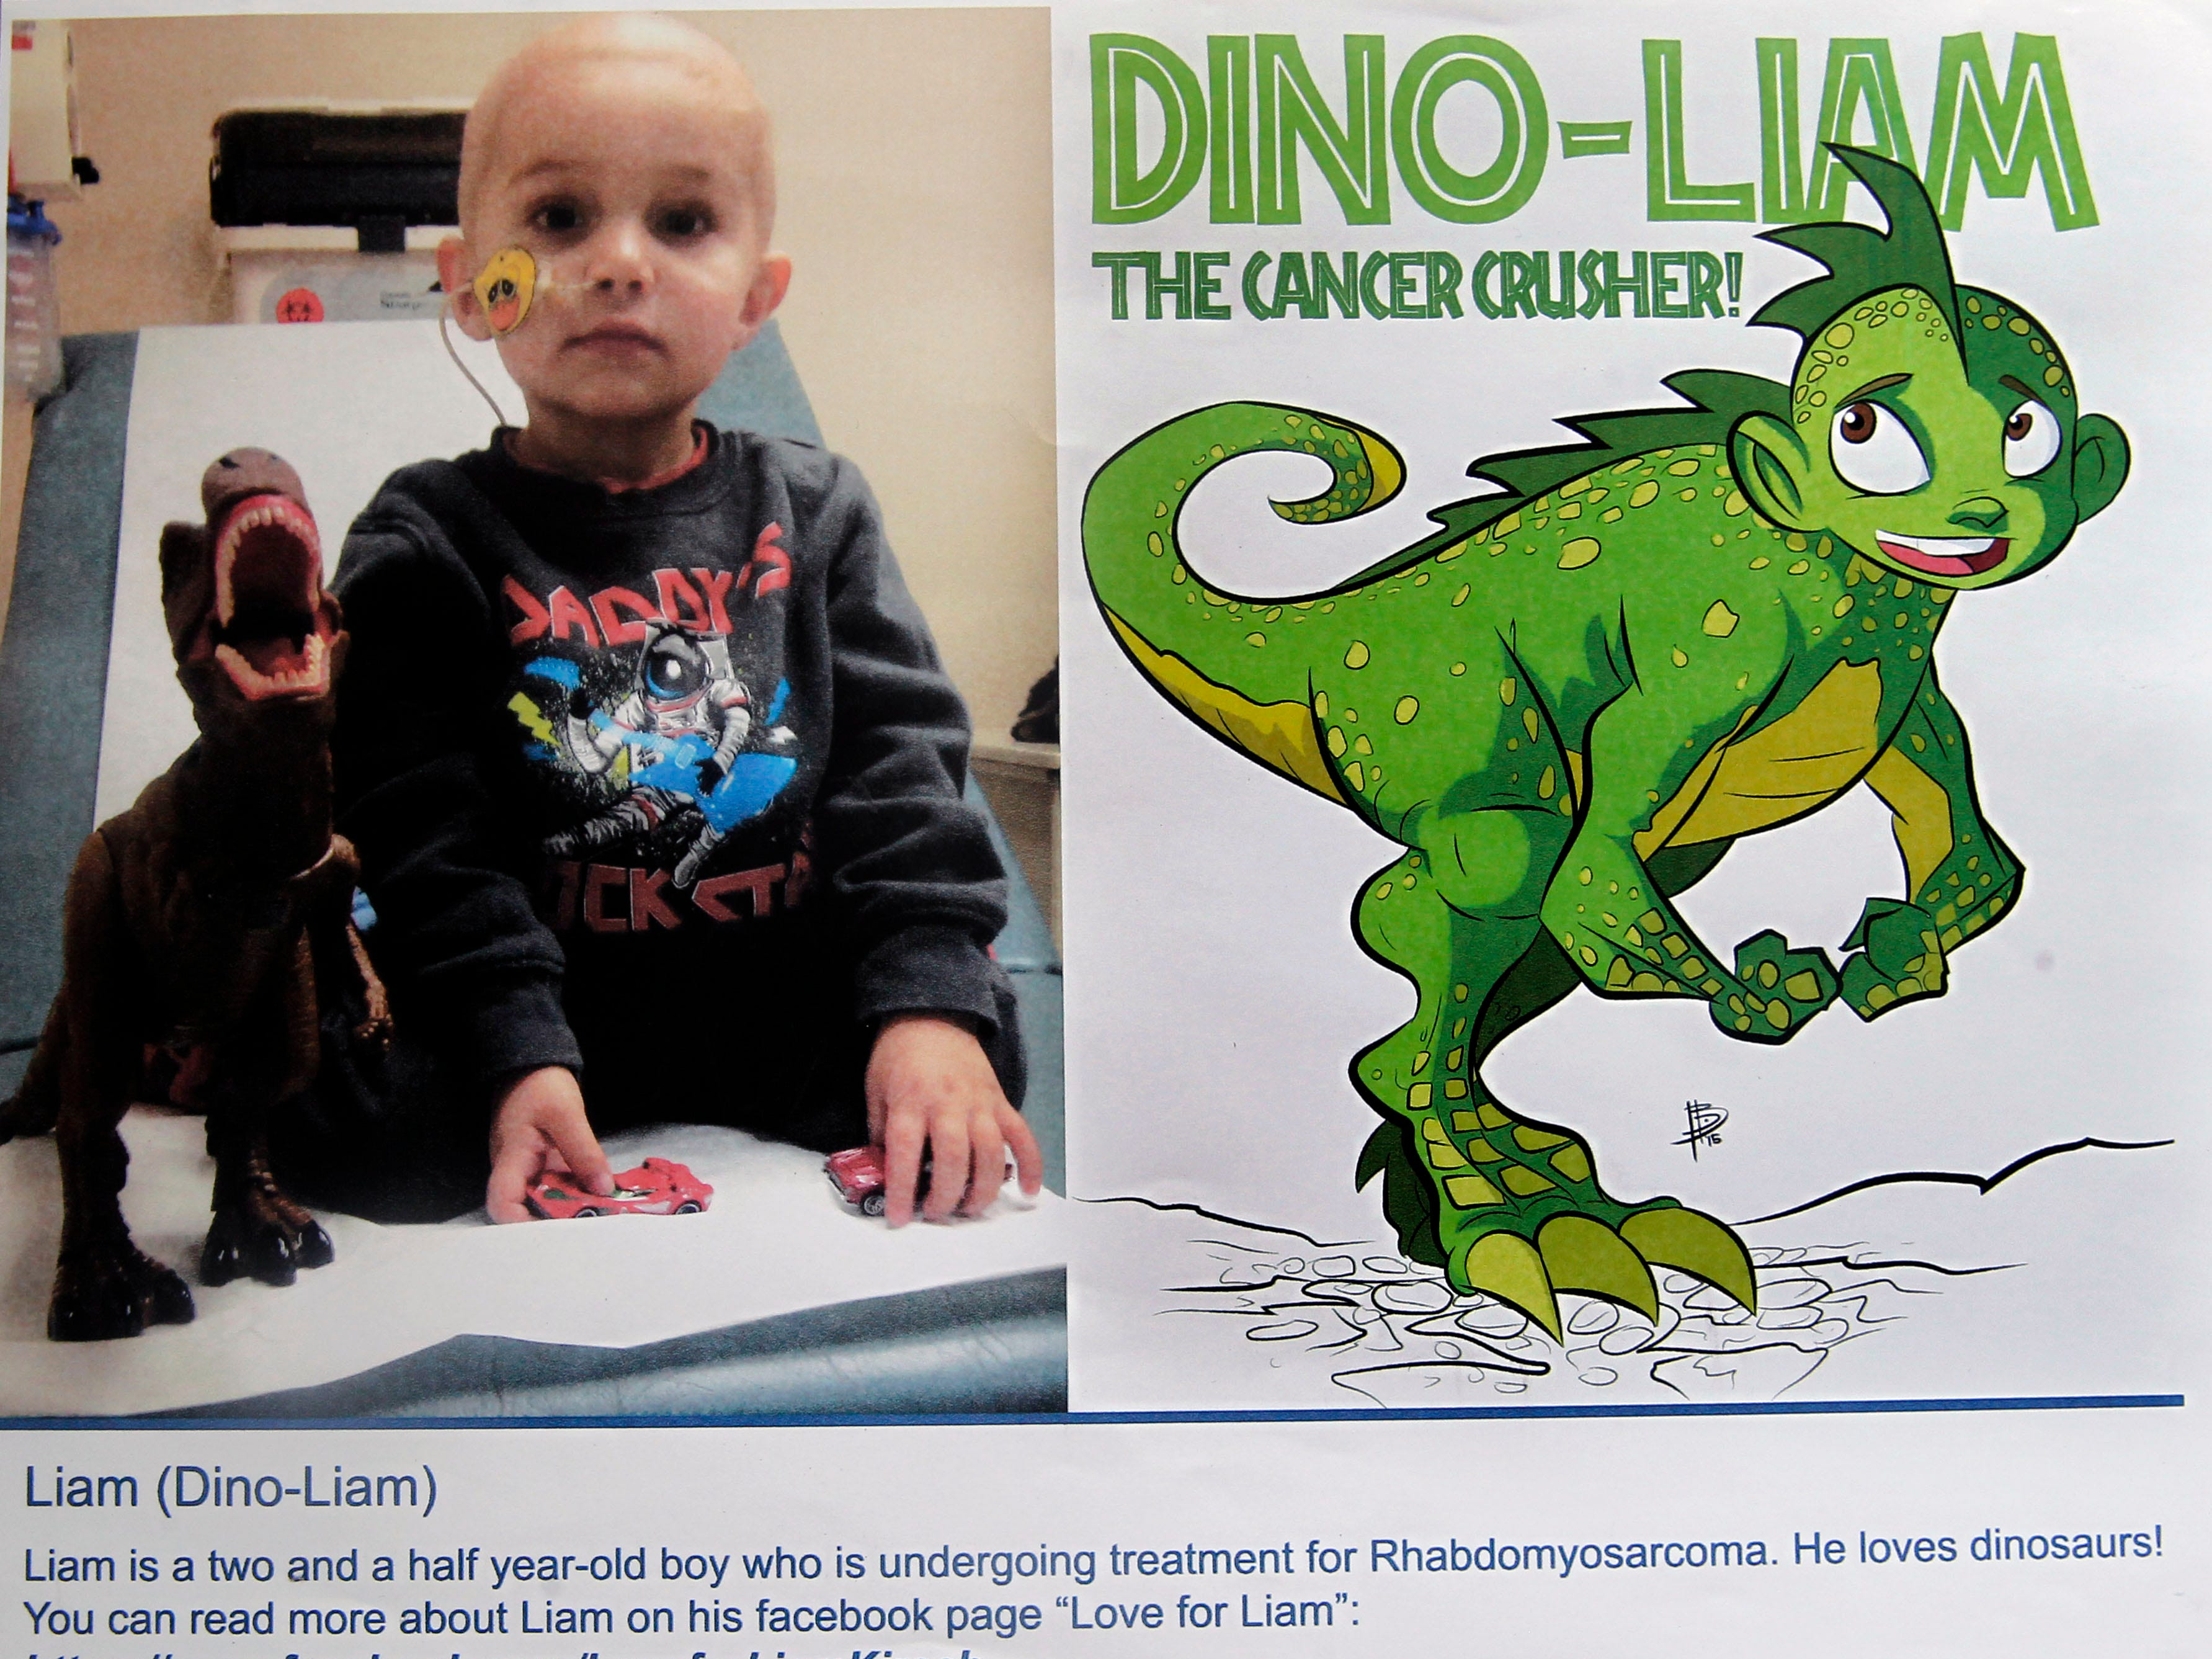 Dino-Liam is another superhero identity created by Bryan Dyer, owner of You Are the Hero.